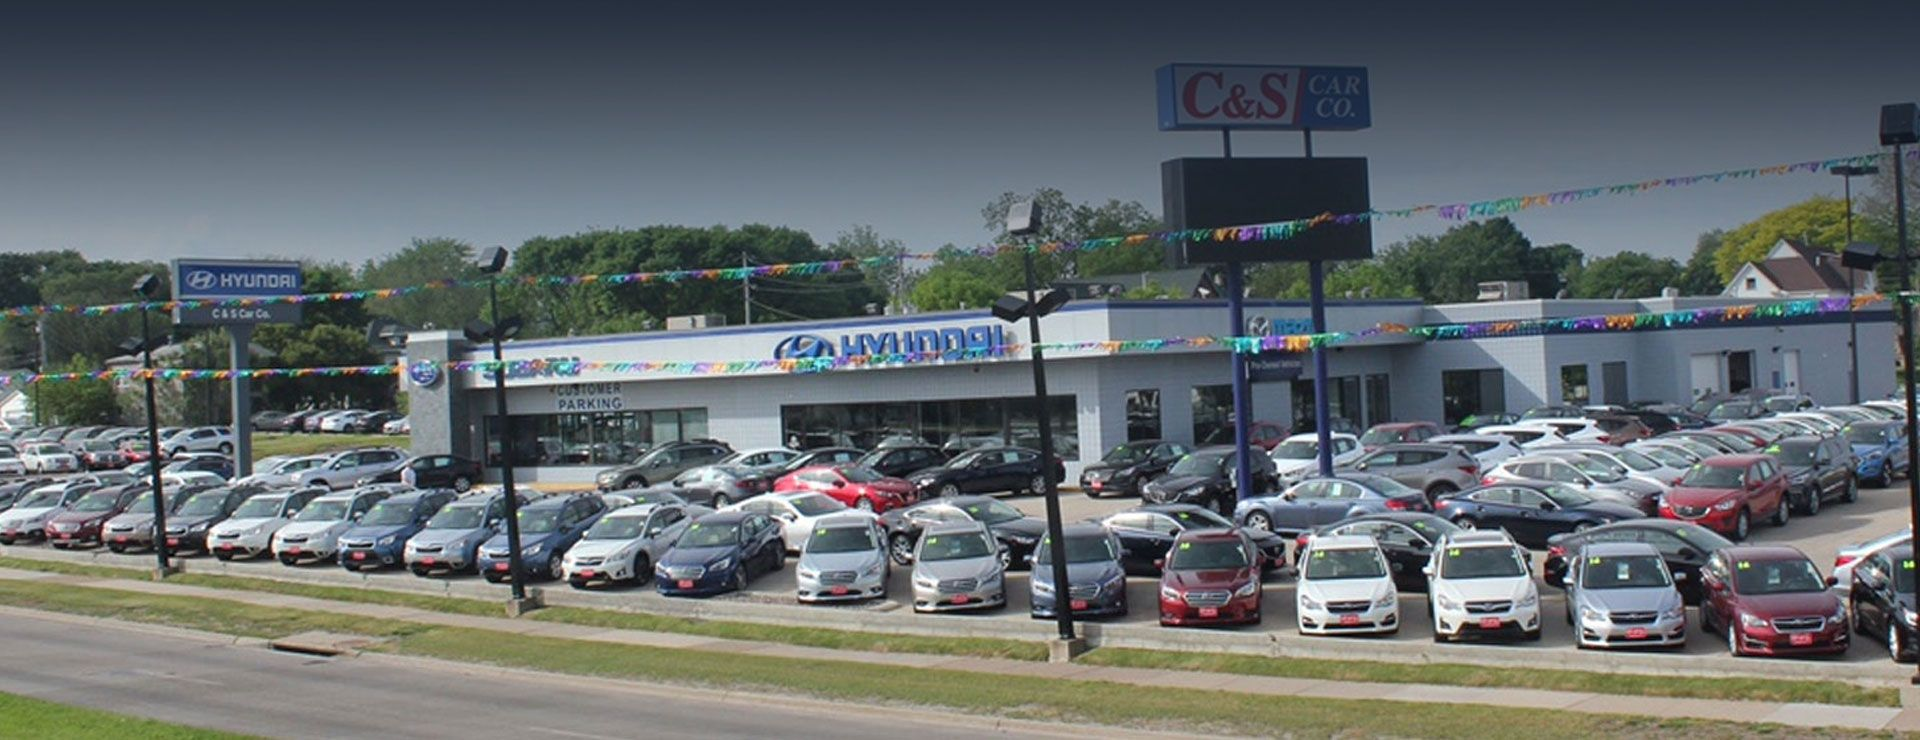 C&S Car Co.